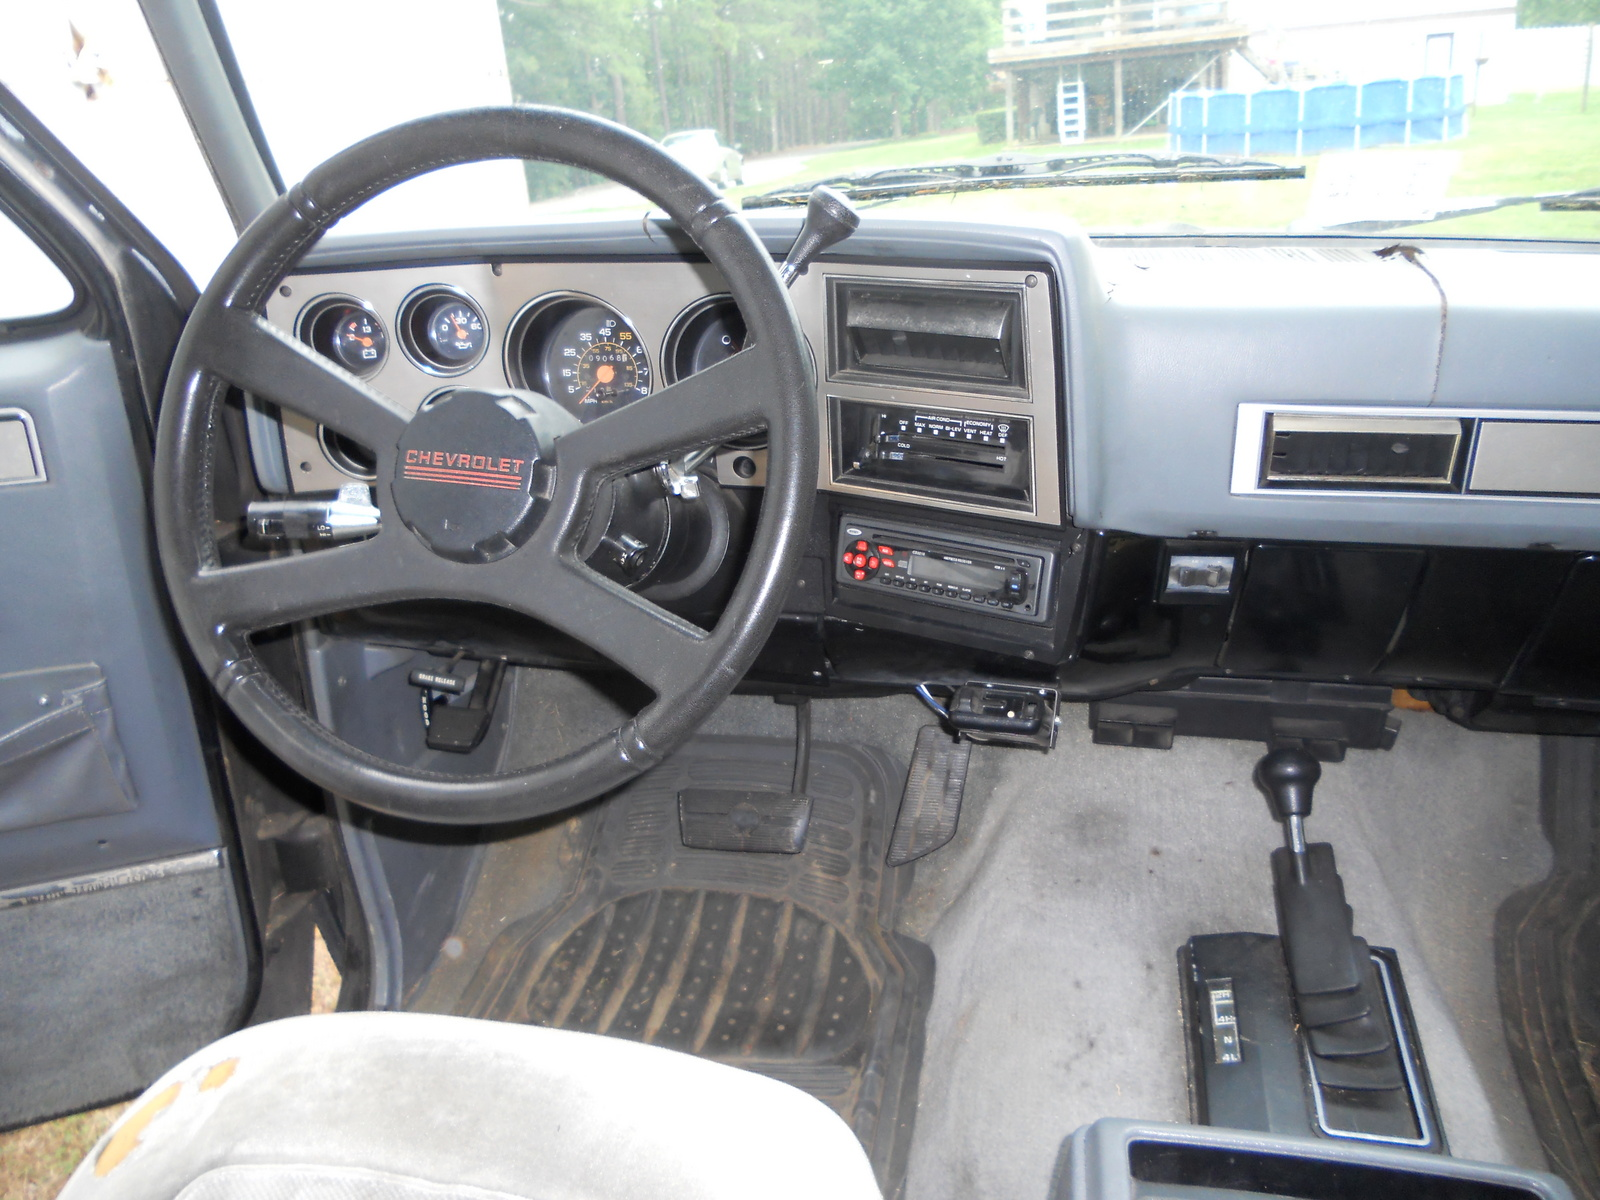 1989 Chevy Blazer Interior Pictures To Pin On Pinterest Pinsdaddy